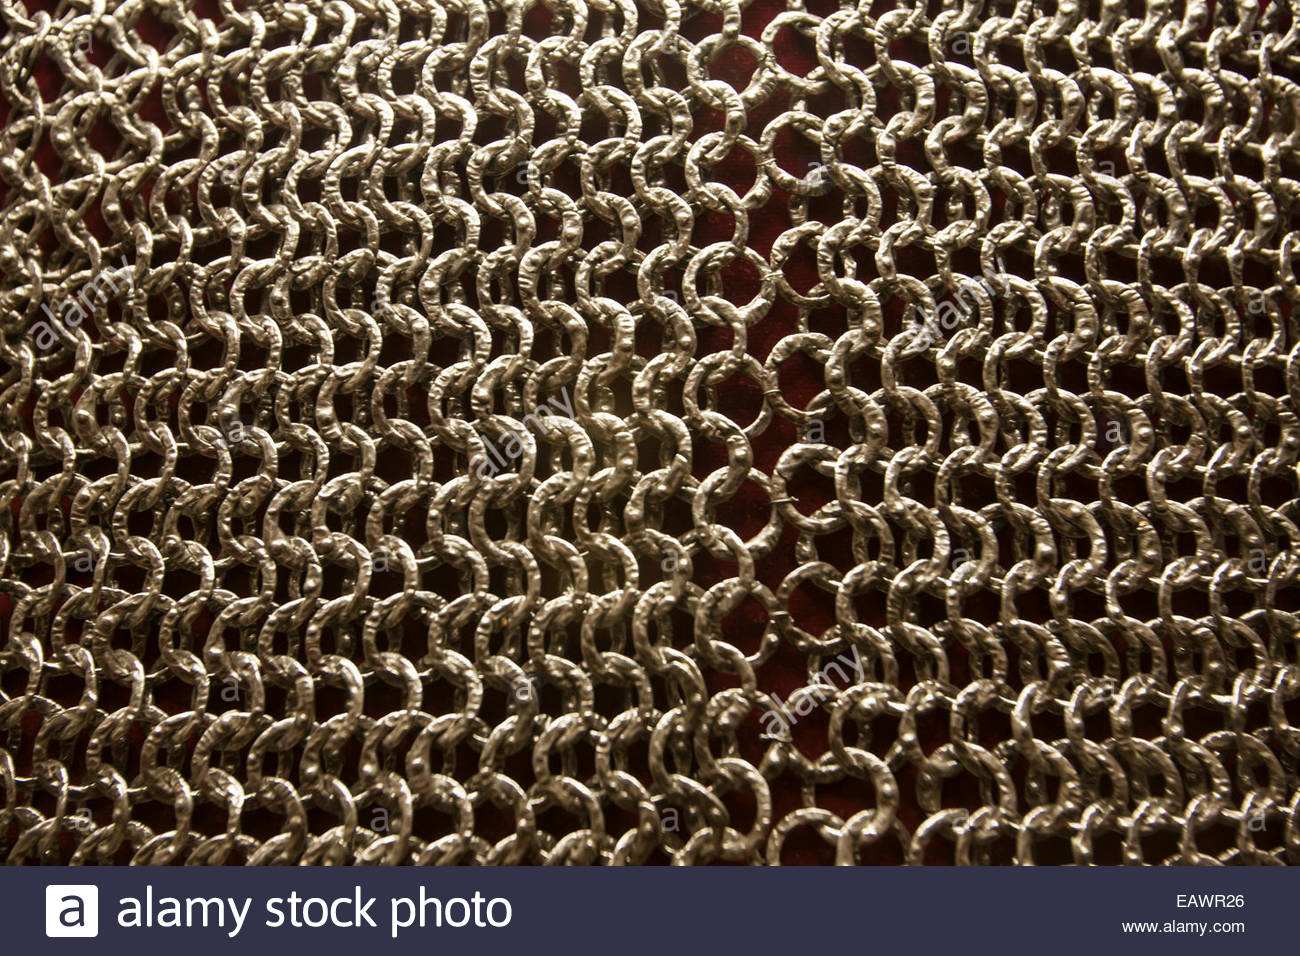 A close up of the armor, mail, on display at the Philadelphia Museum of Art. - Stock Image